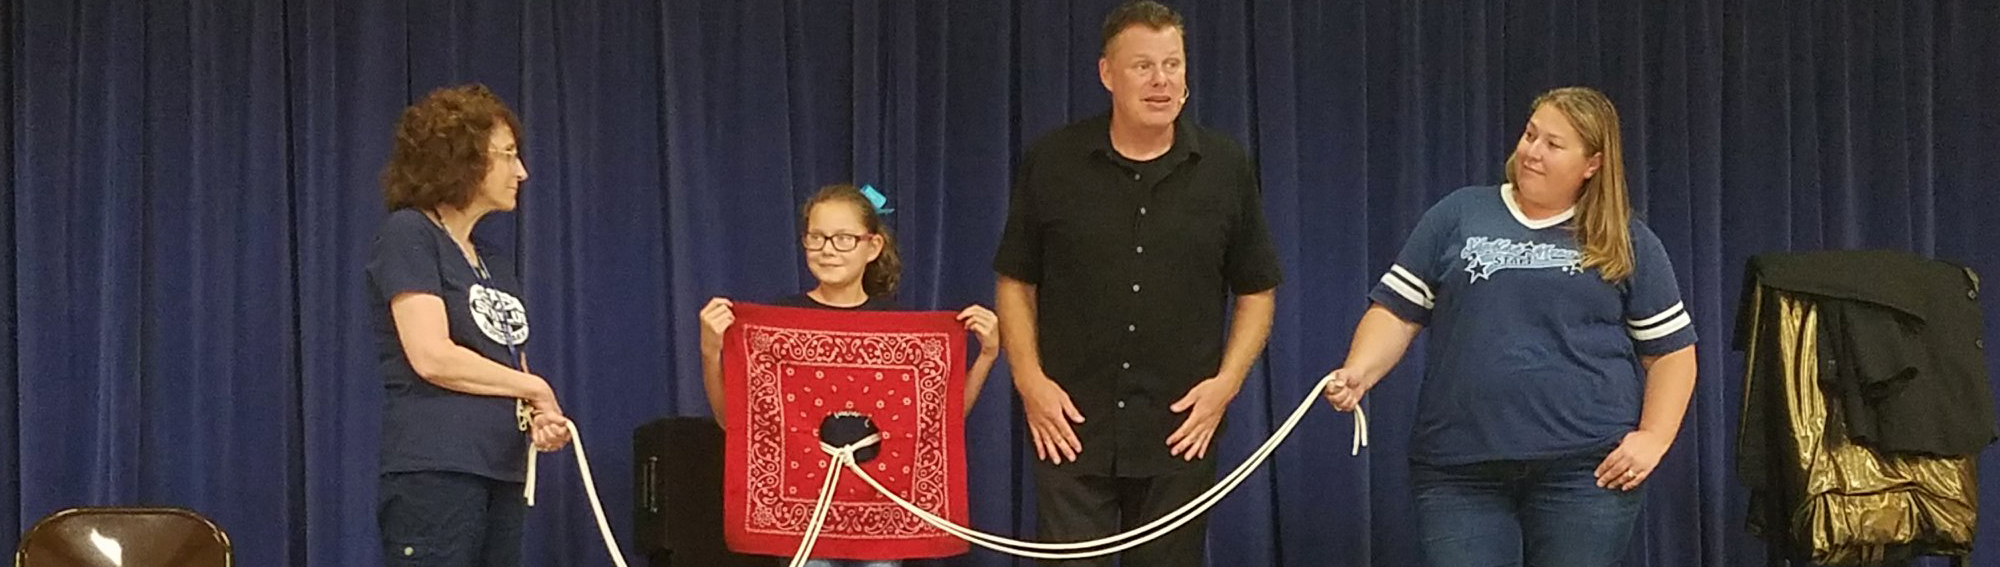 staff members holding a rope while a student is holding a handkerchief